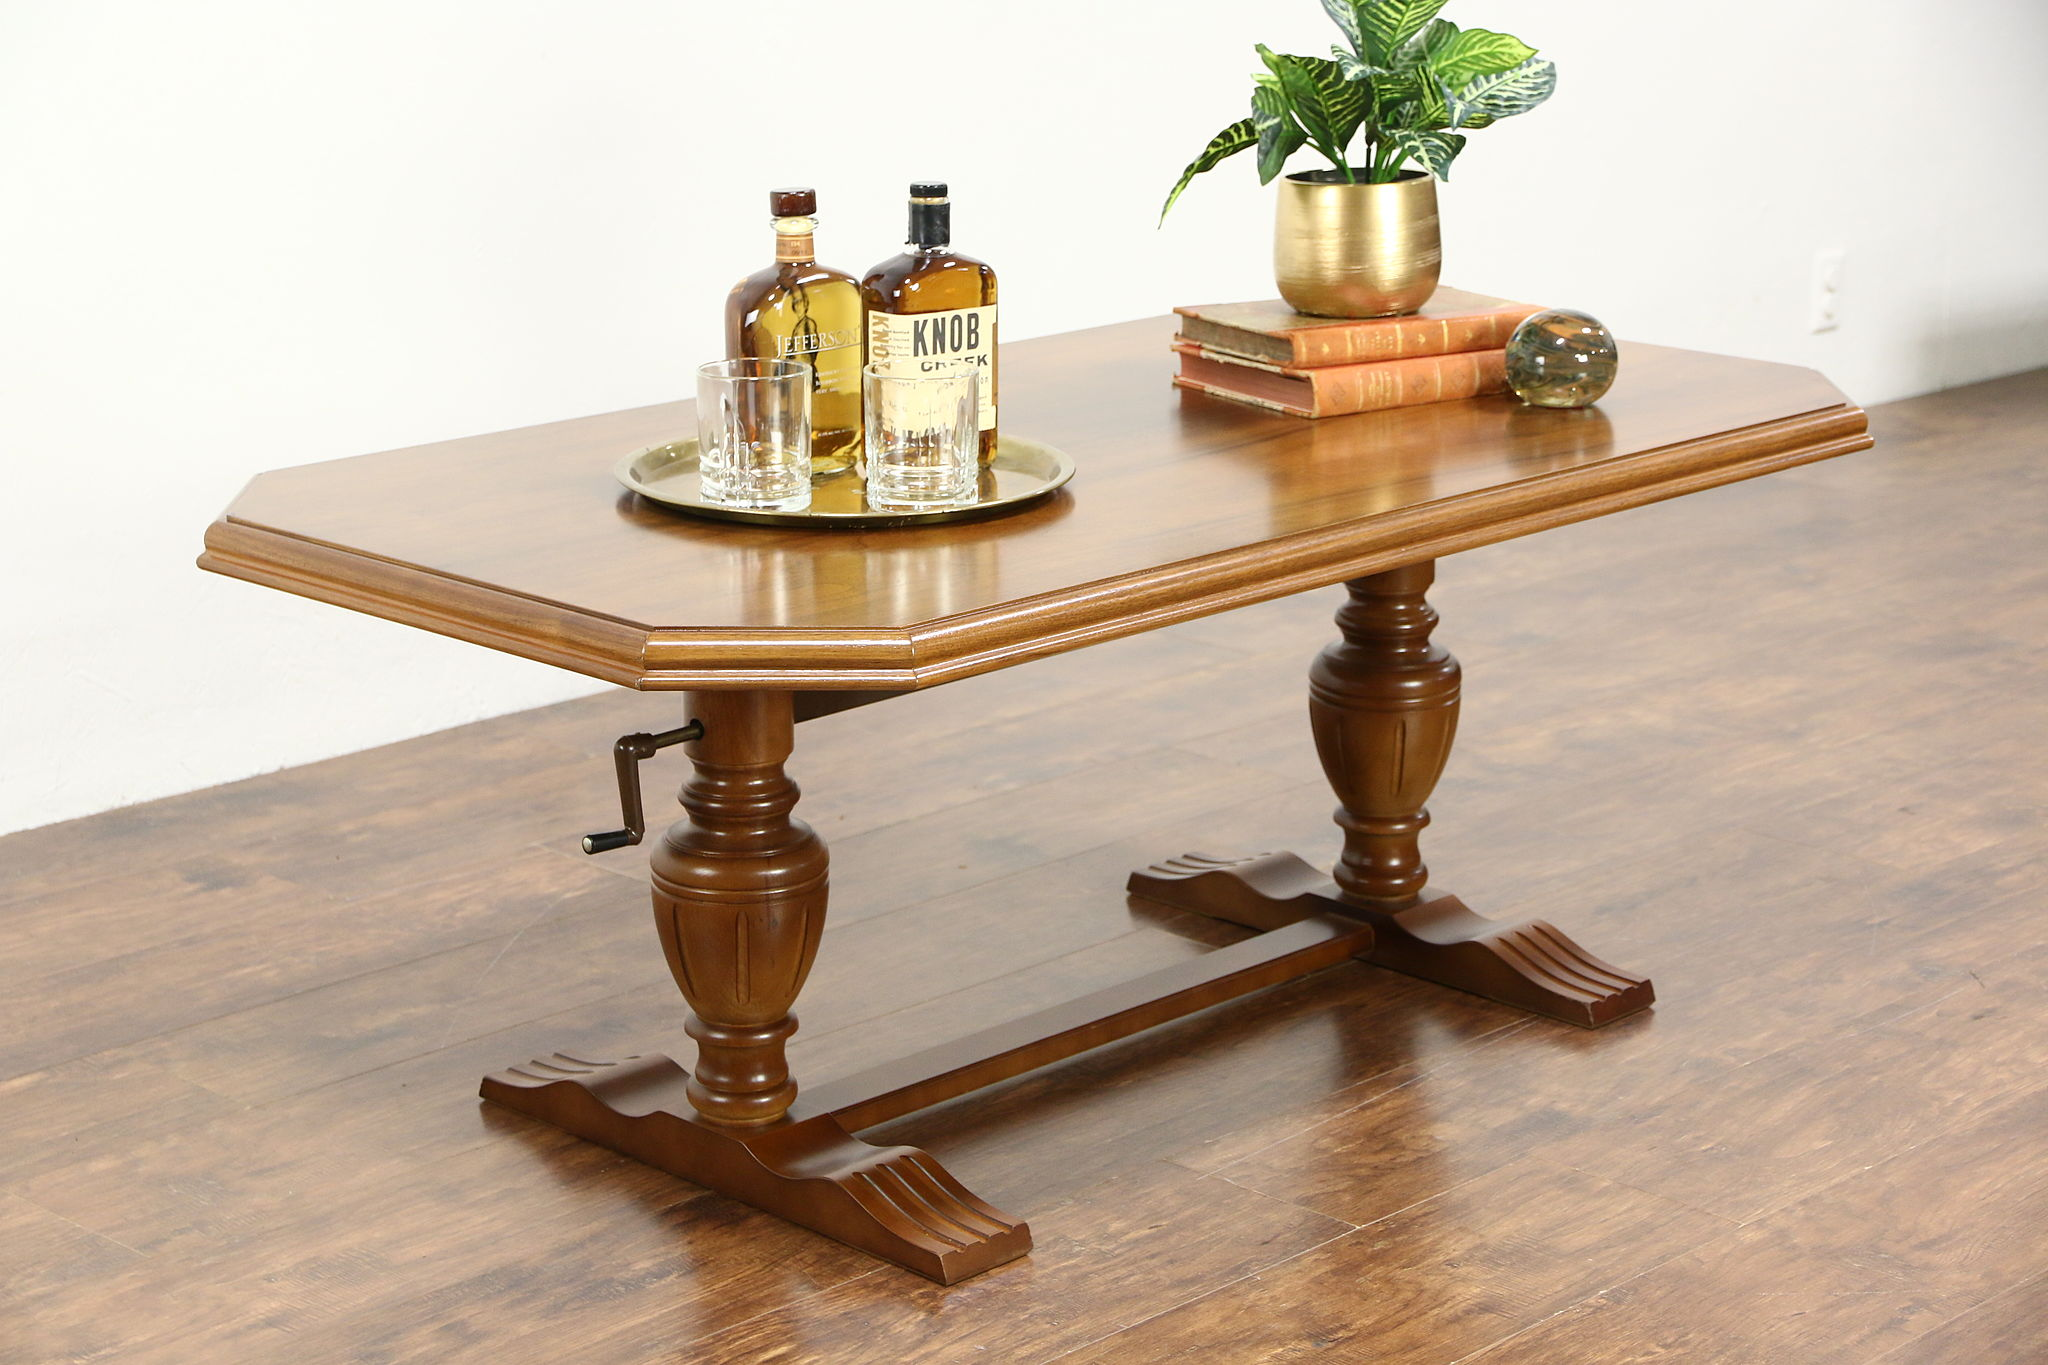 SOLD Scandinavian Walnut Elevator Coffee Table Rises for Wine